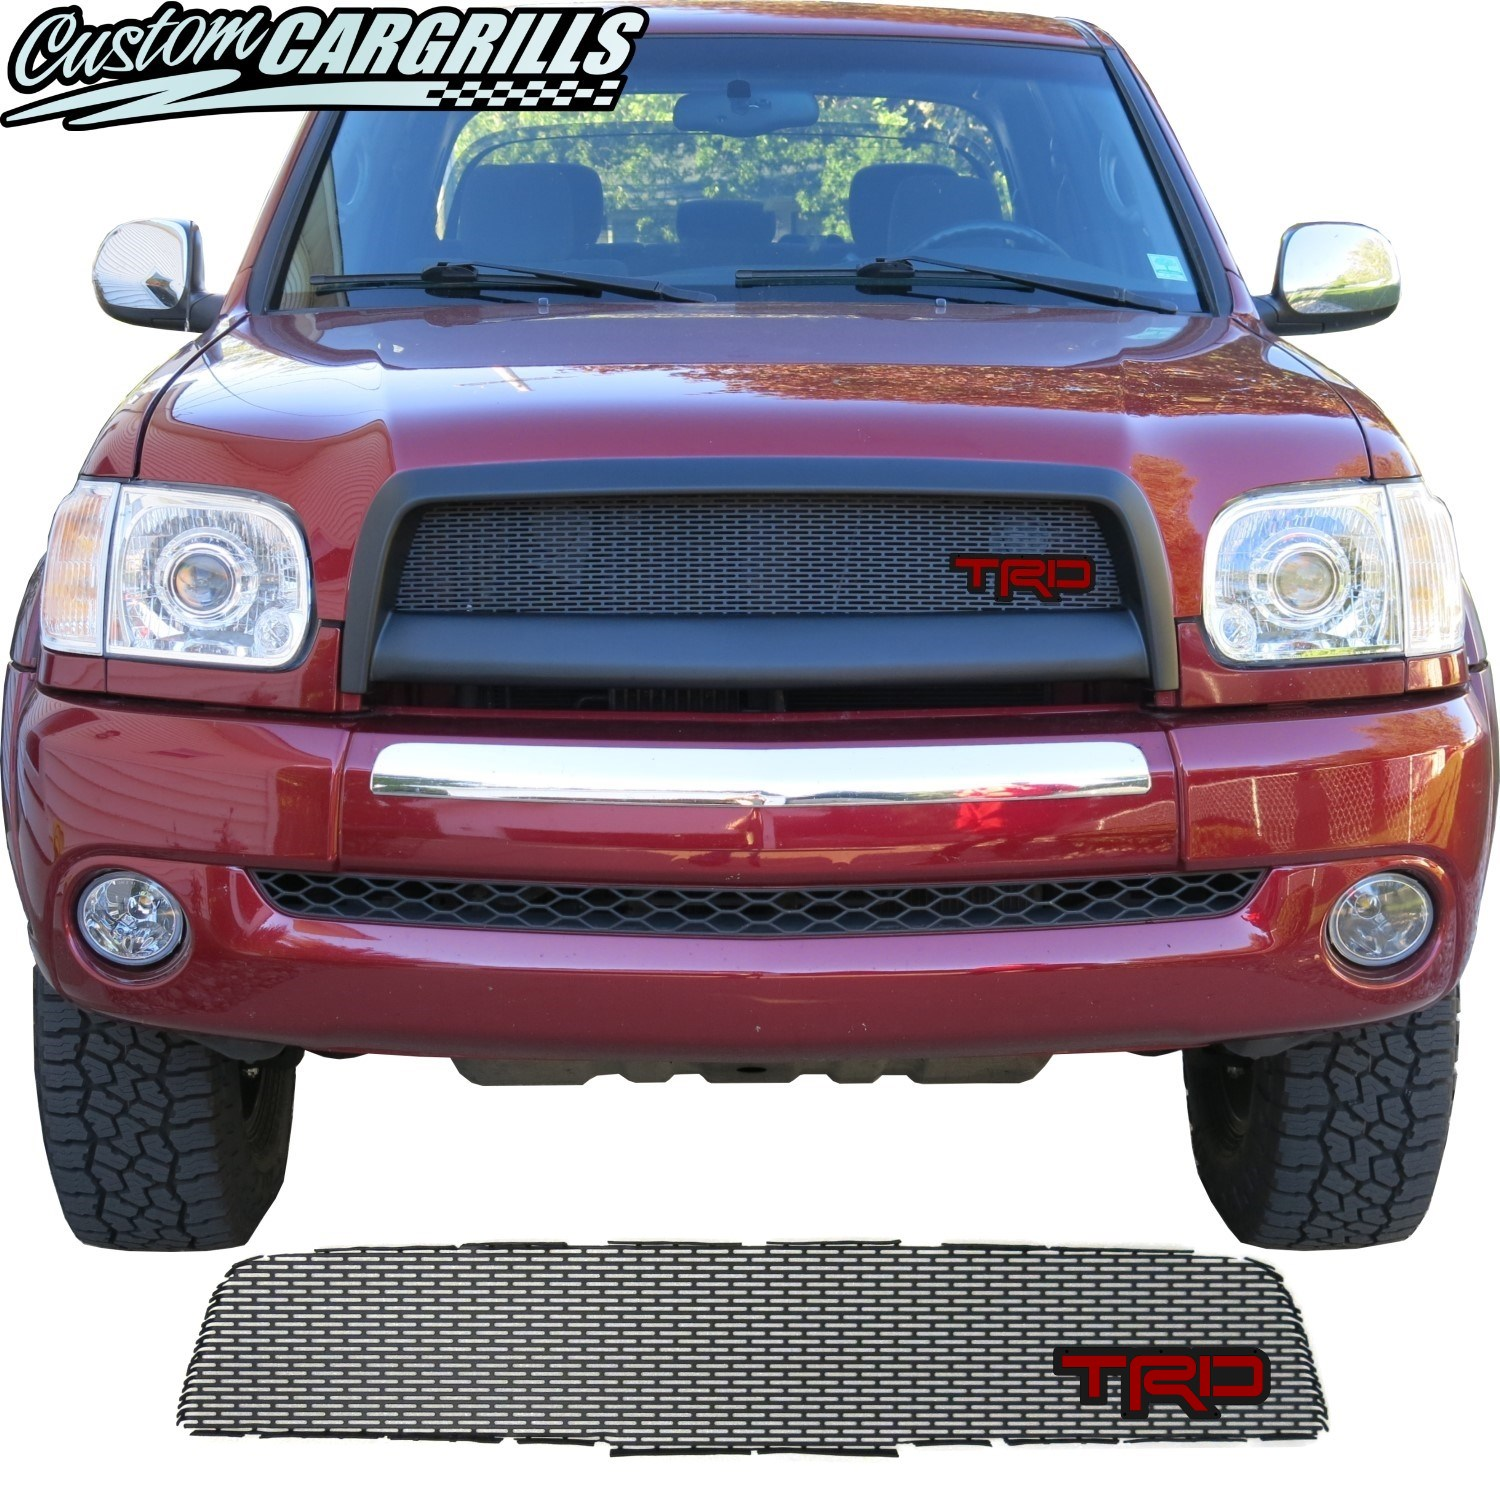 2003-06 Toyota Tundra Grill Mesh with TRD Emblem